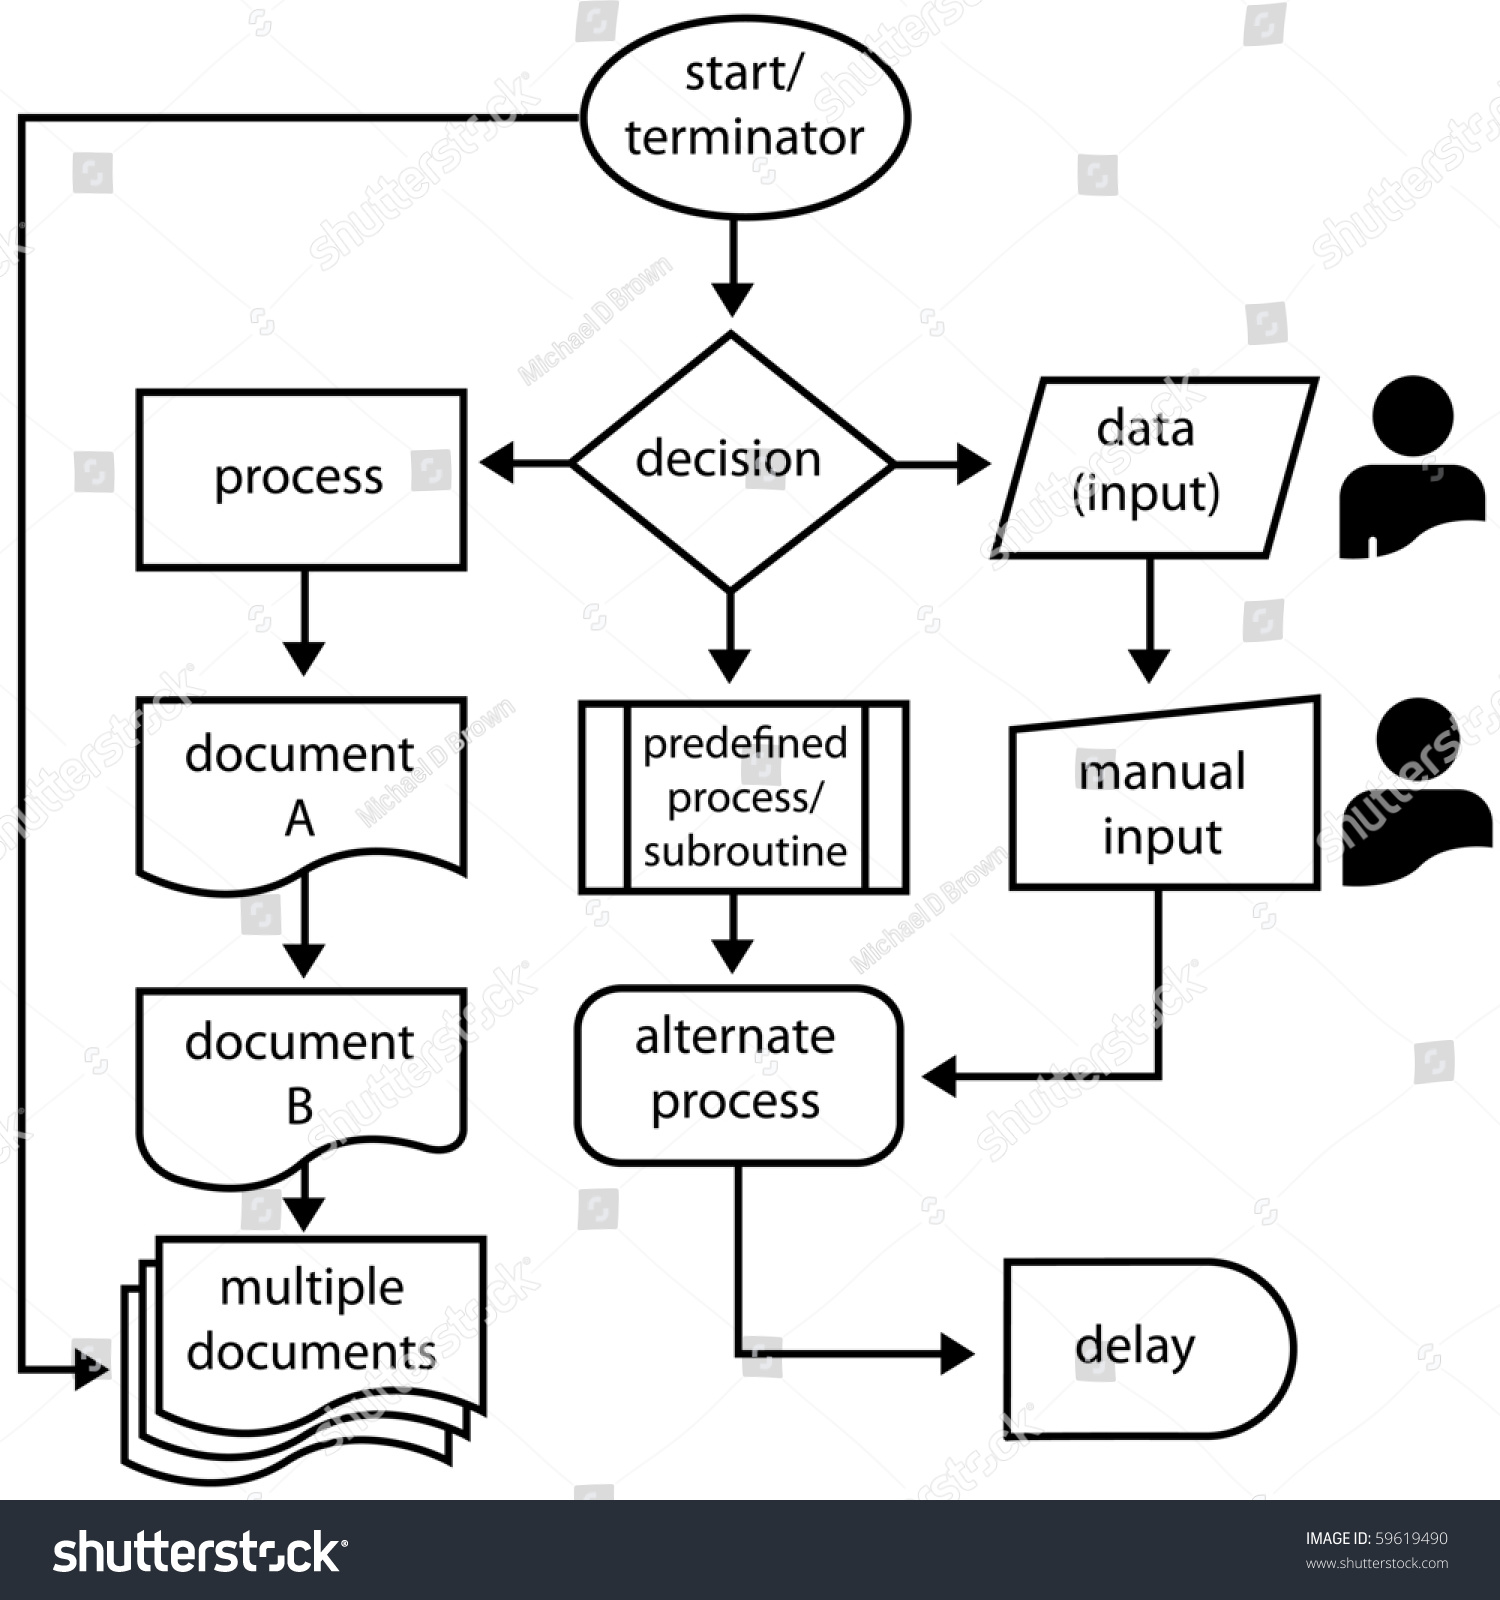 what is flow chart in computer: Flowchart symbols labels flow arrows computer stock vector